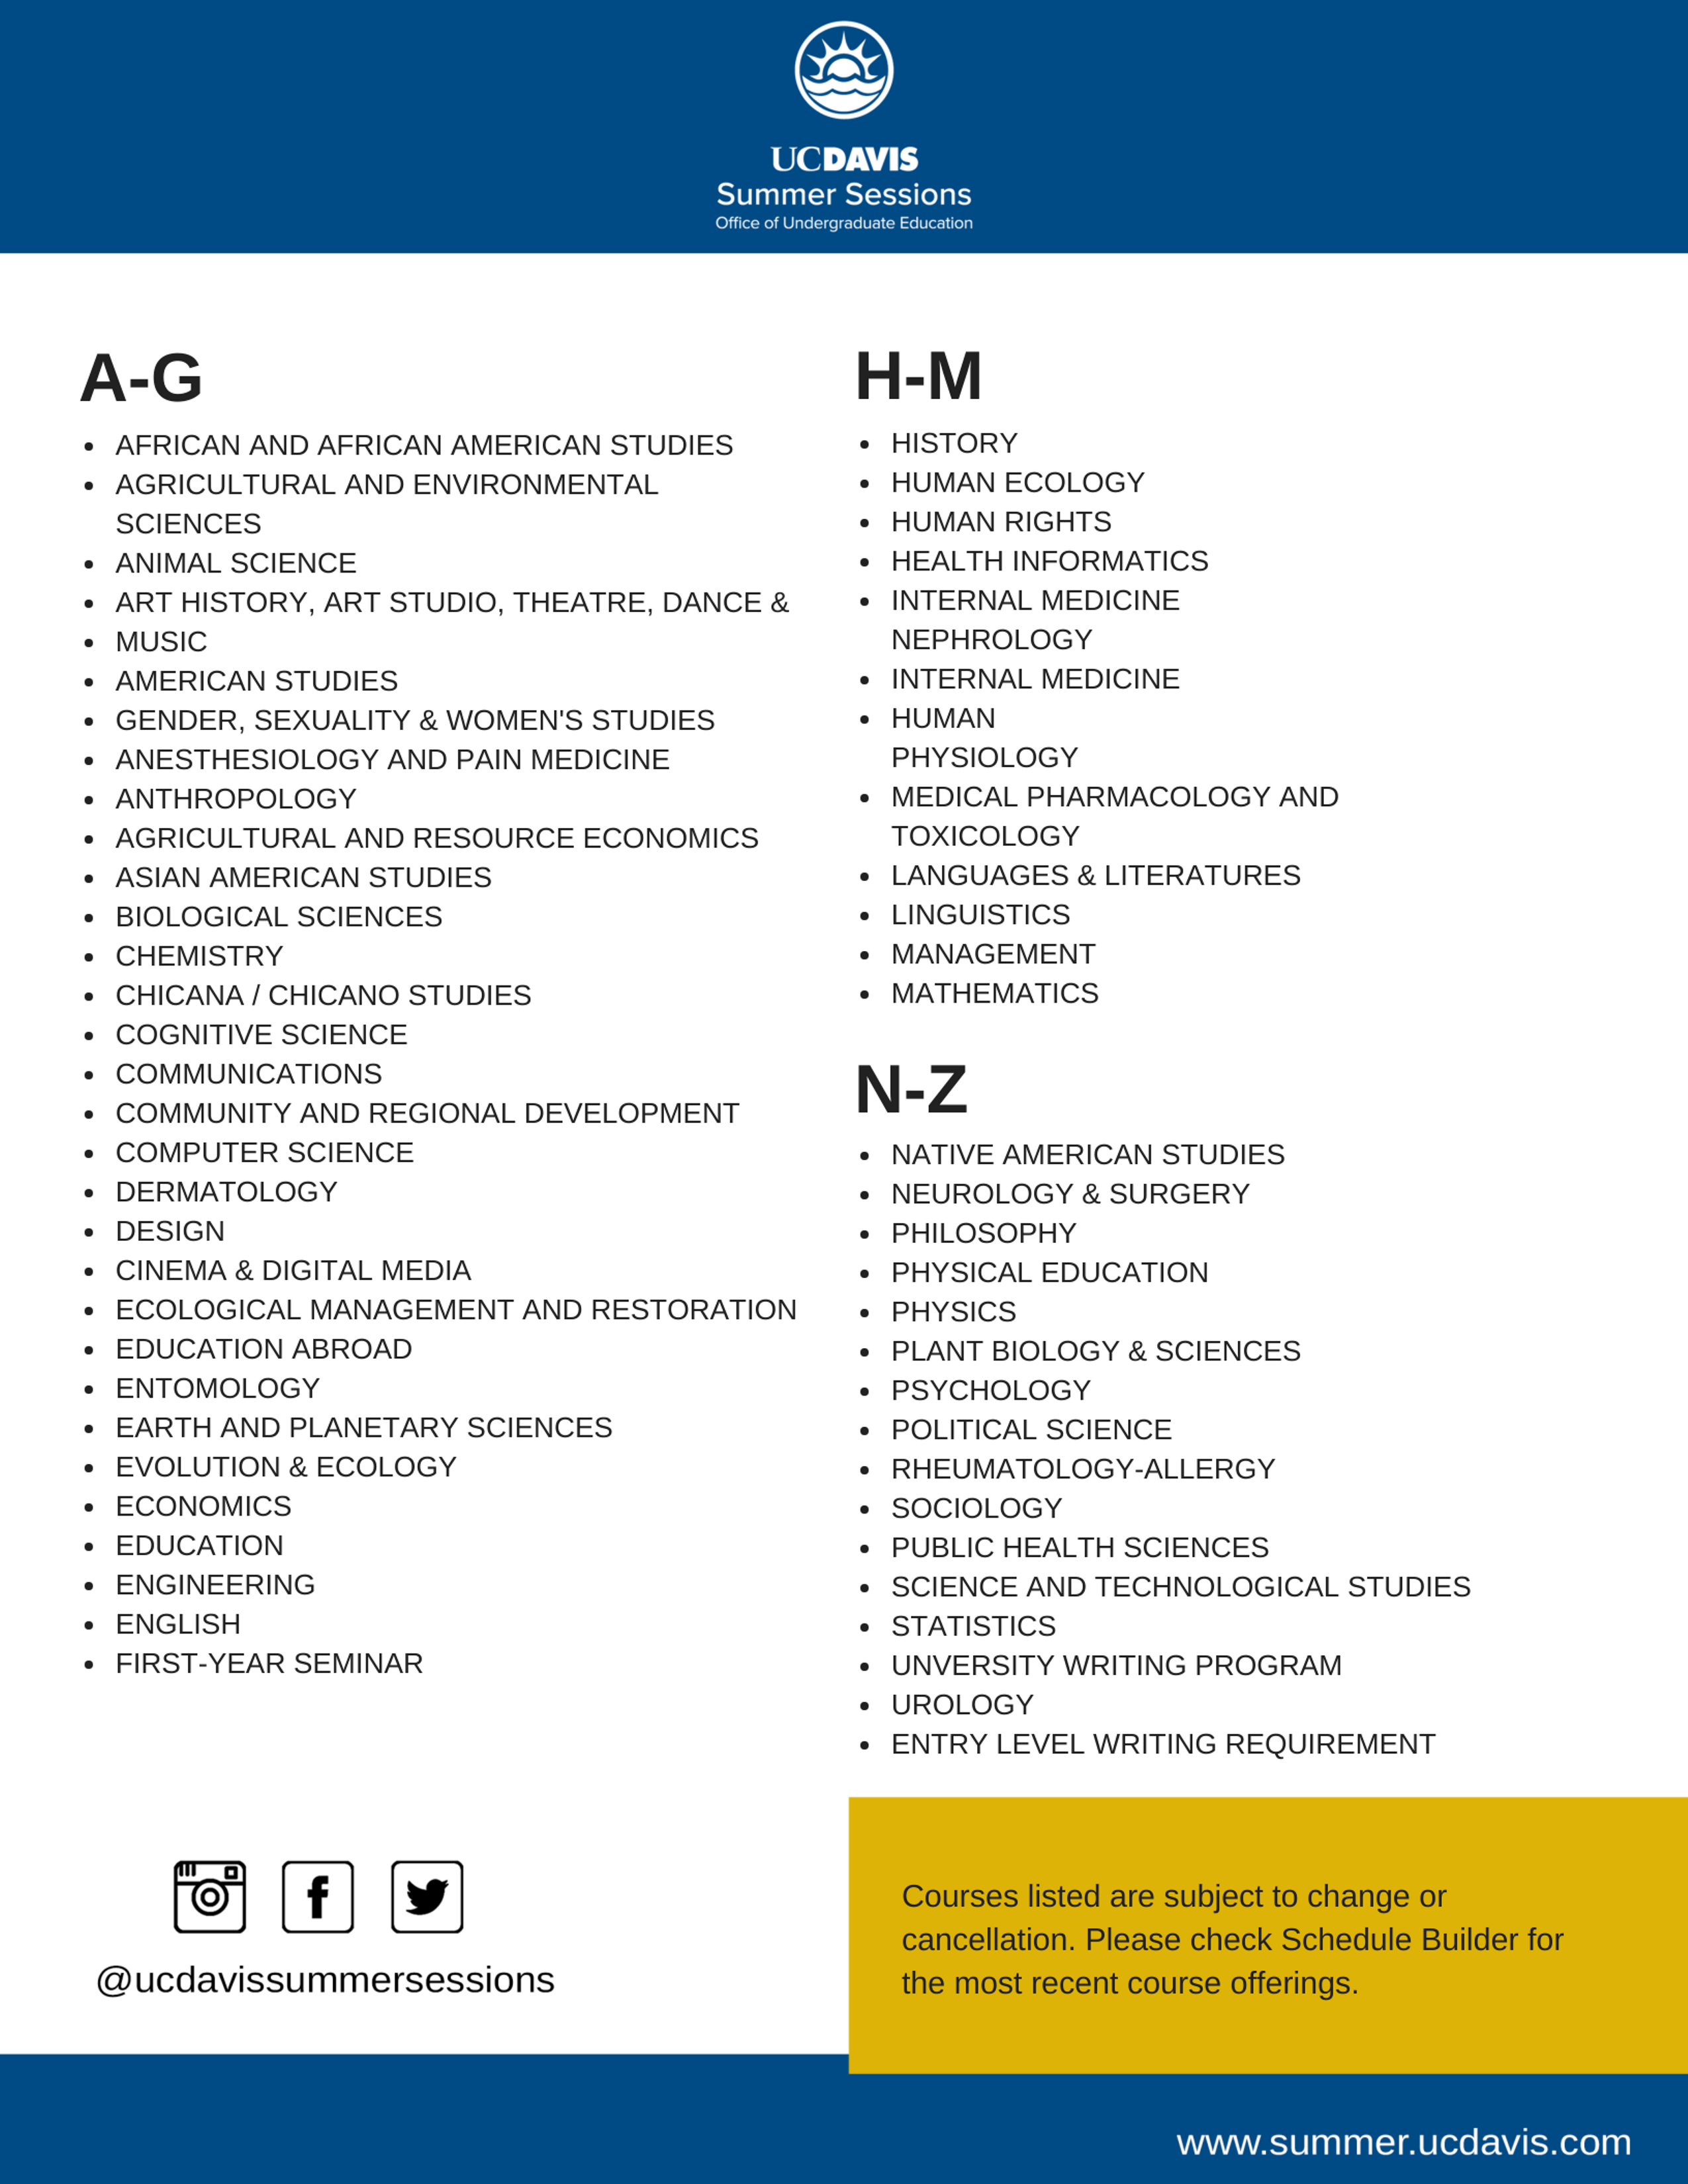 A table of contents for courses offered, organized by department.